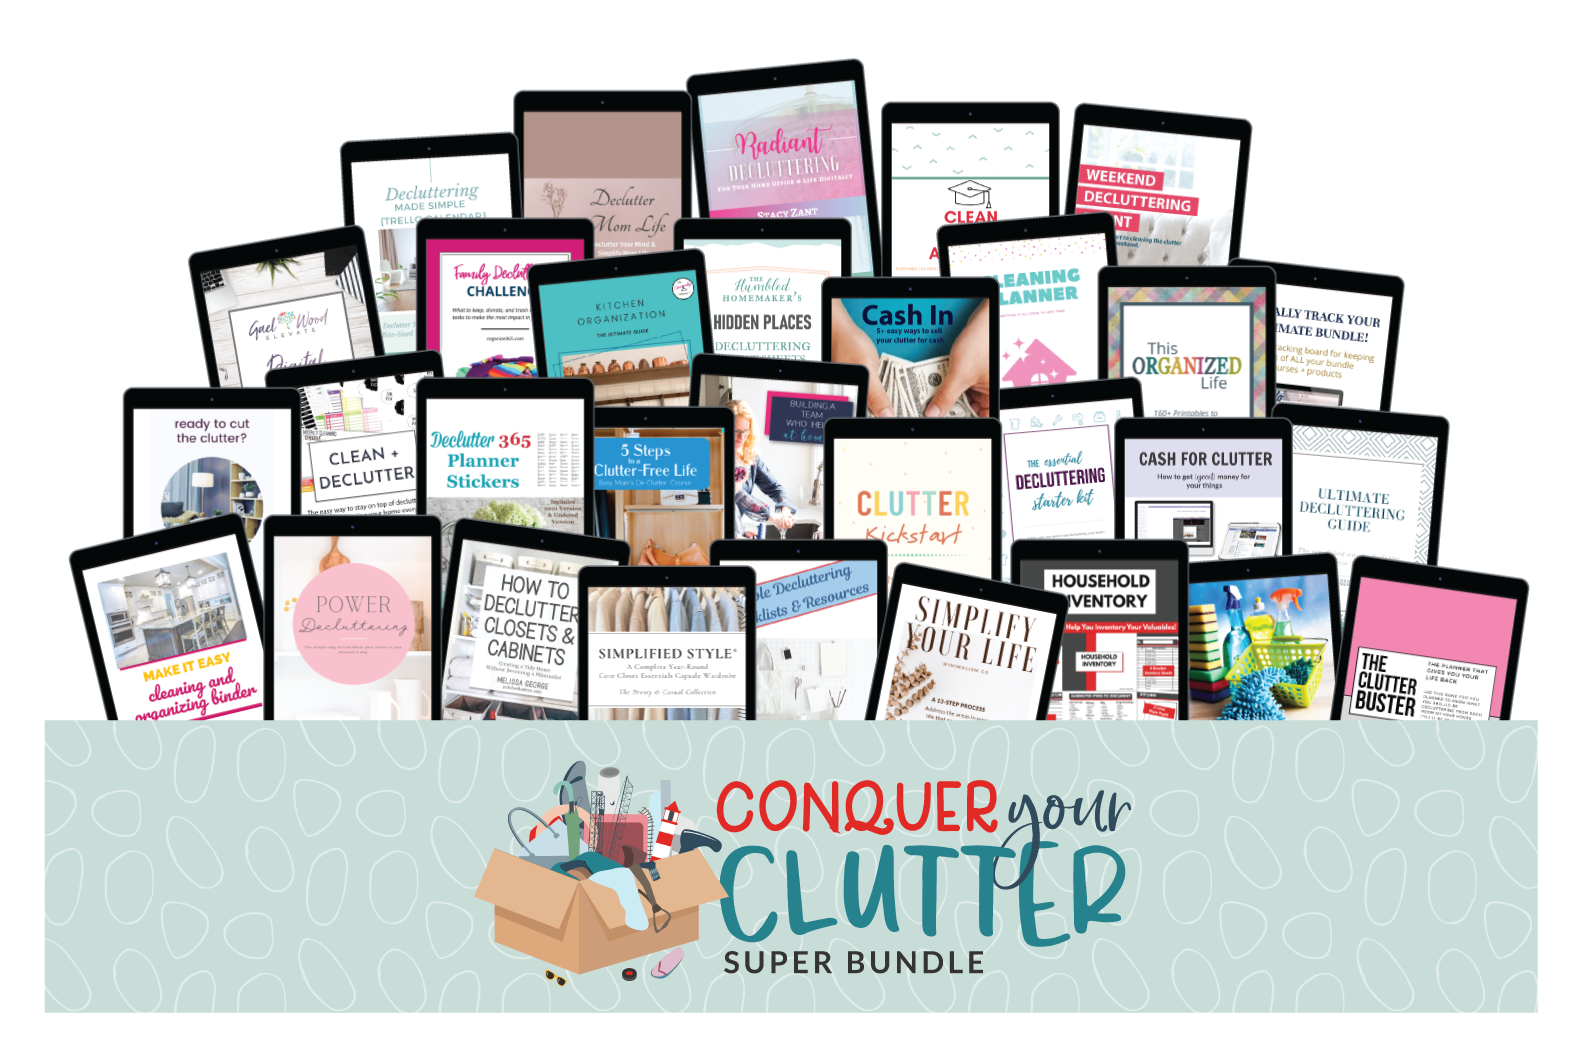 Four Favorite Resources from the Conquer Your Clutter Super Bundle